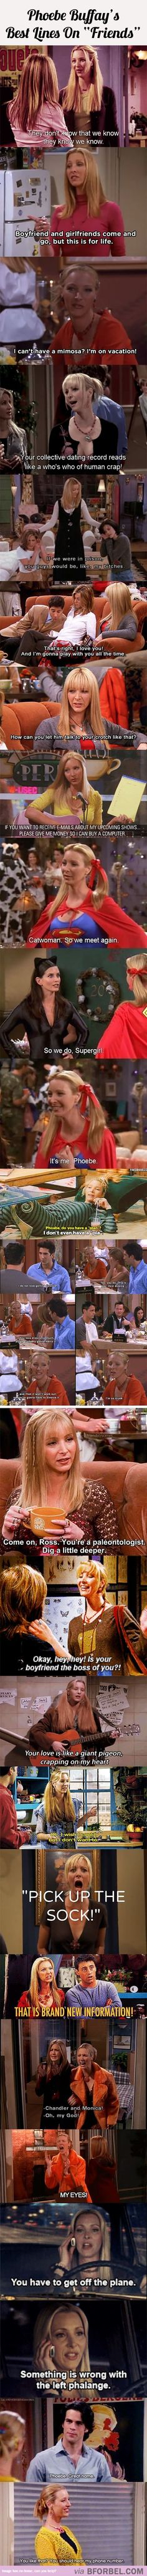 "19 Of Phoebe Buffay's Best Lines On ""Friends""…:"